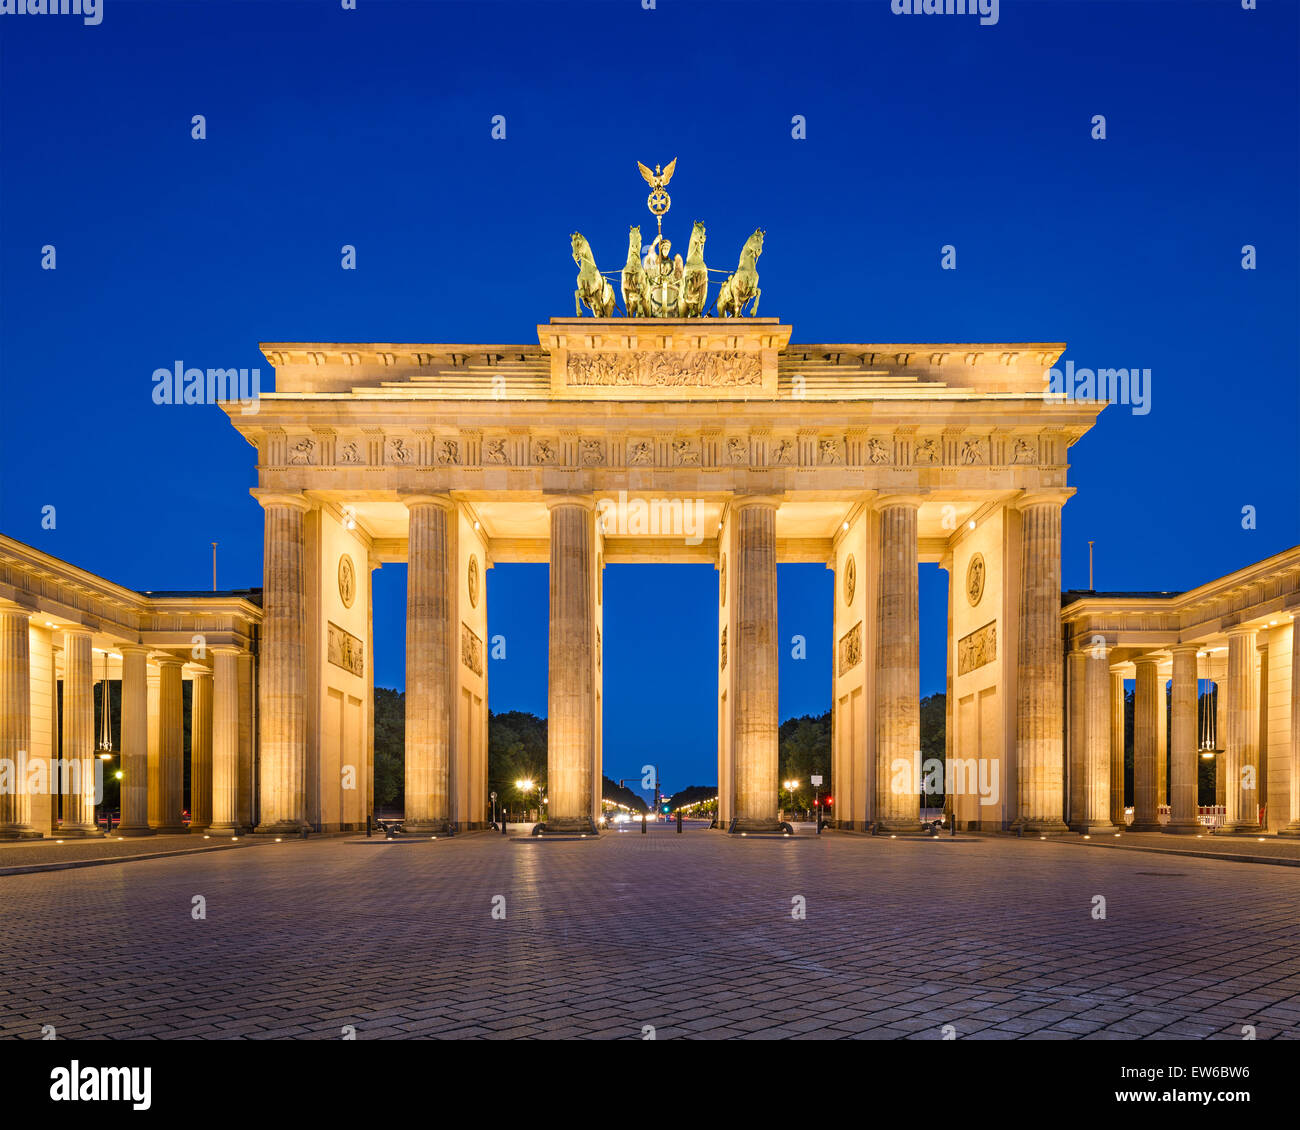 Berlin, Allemagne à la porte de Brandebourg. Photo Stock